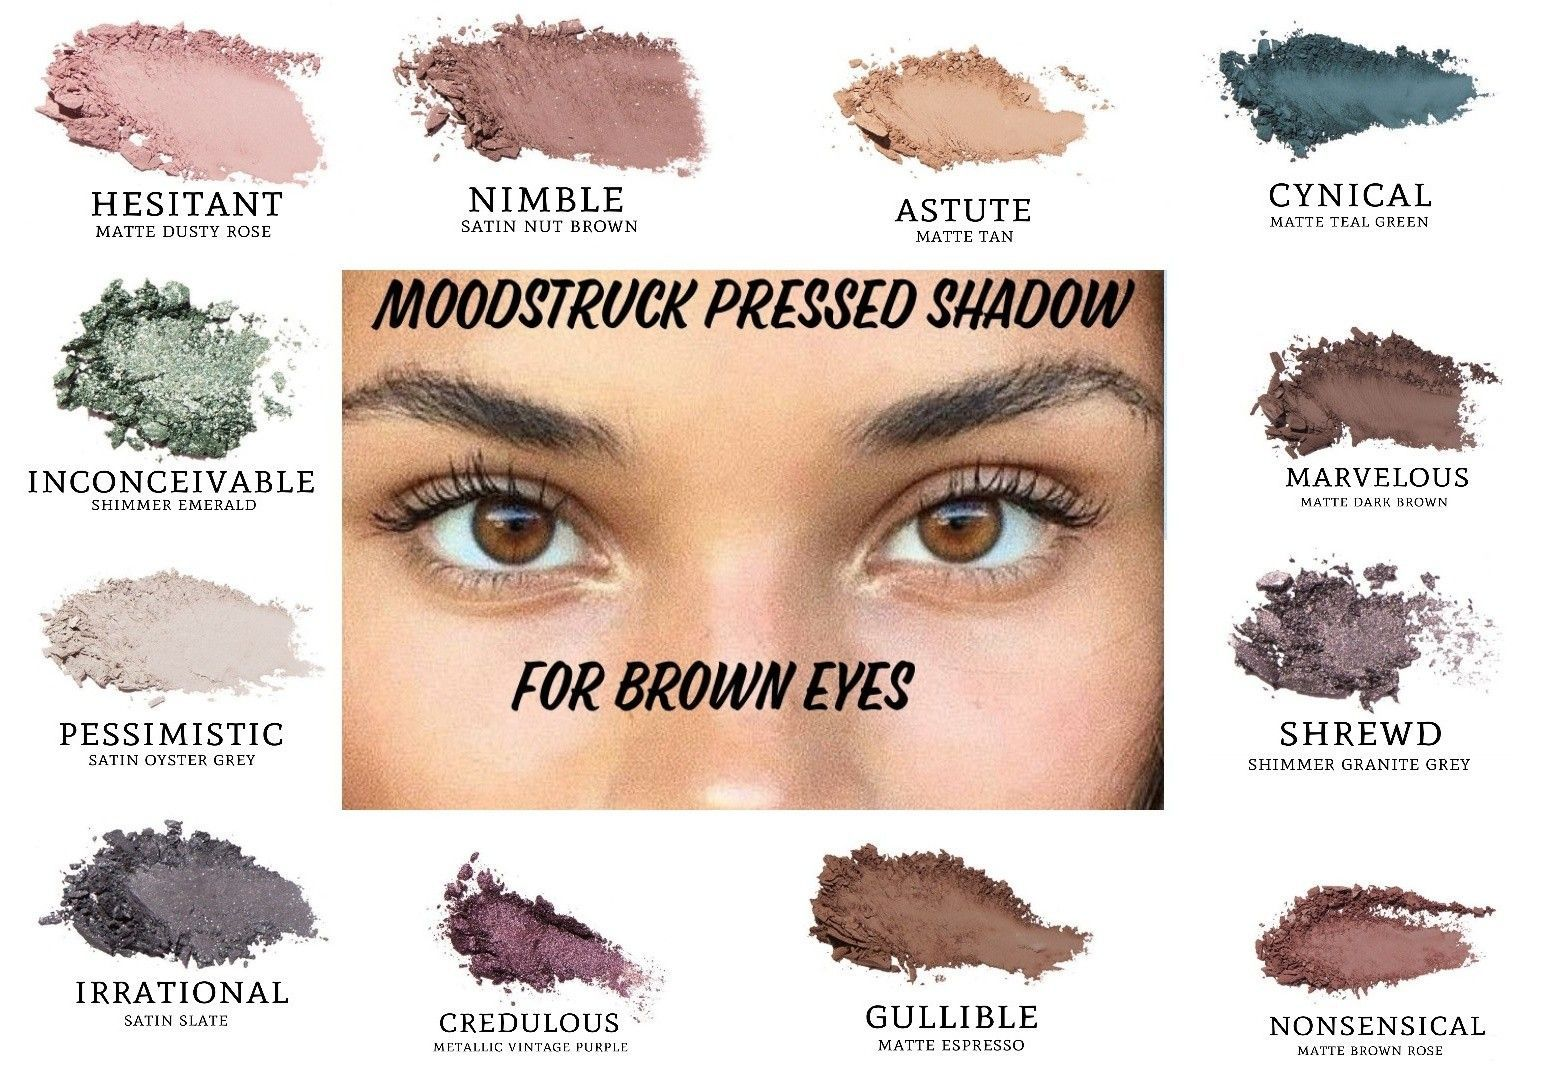 Do you have brown eyes these are some of the moodstruck